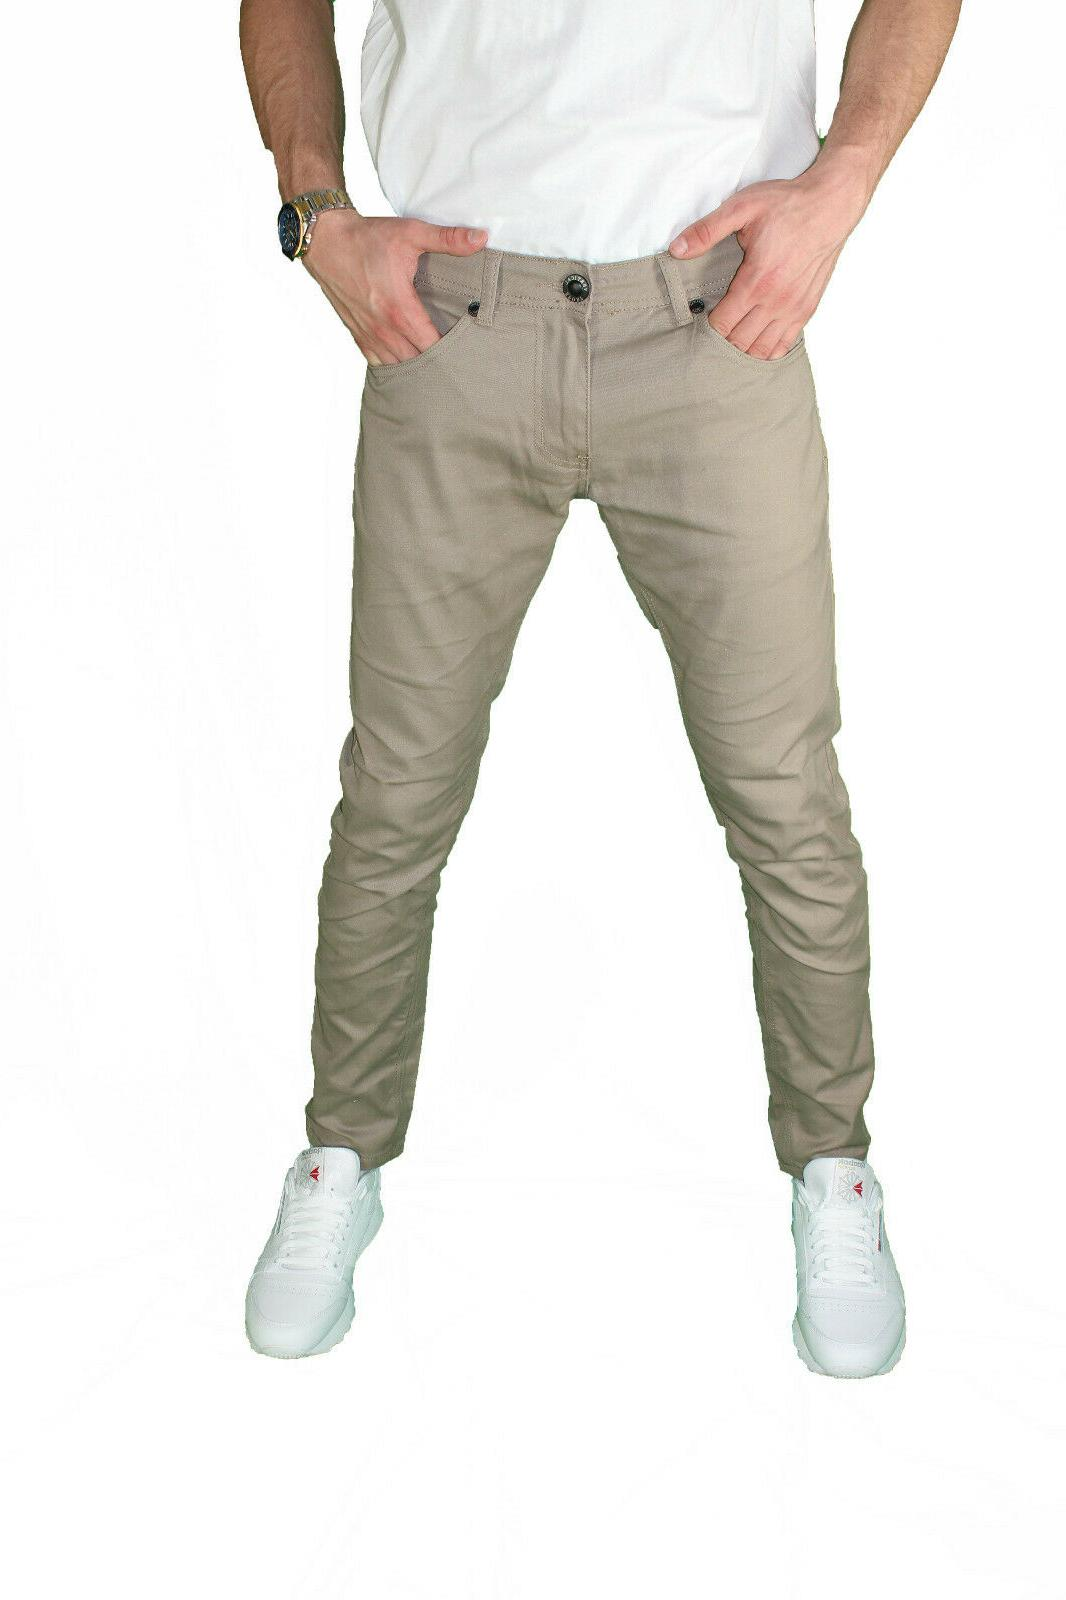 Mens Slim Fit Pants Fashion Casual Trouser Chino Stretched Pant NEW